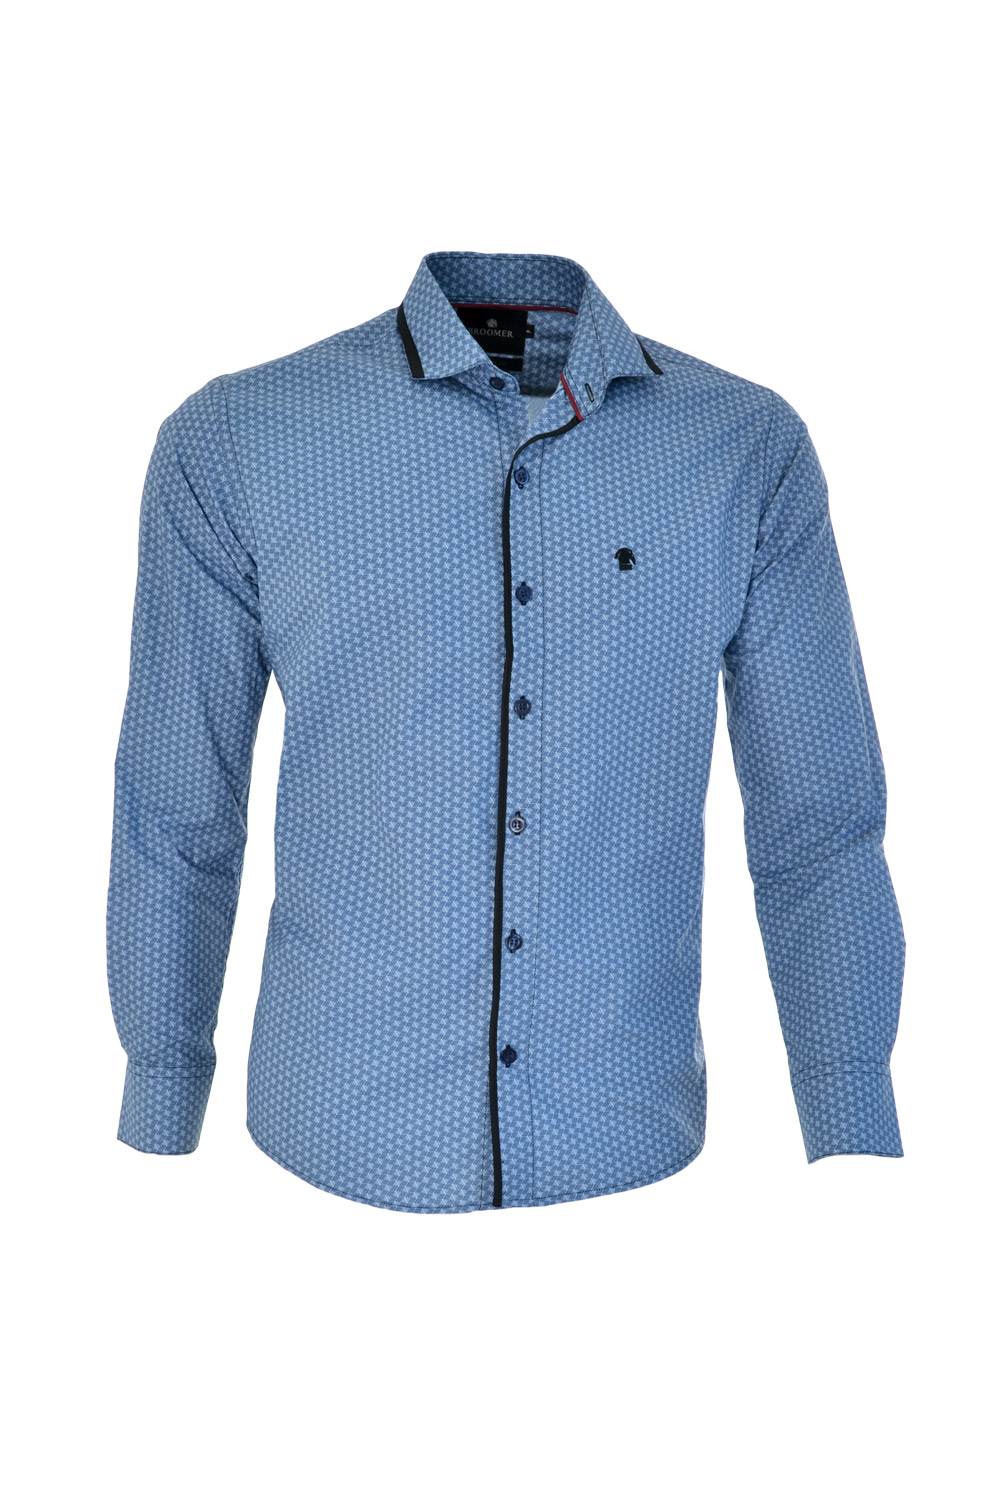 CAMISA ML FASHION SUPER SLIM ALGODAO COMPOSE ESTAMPA AZUL MEDIO